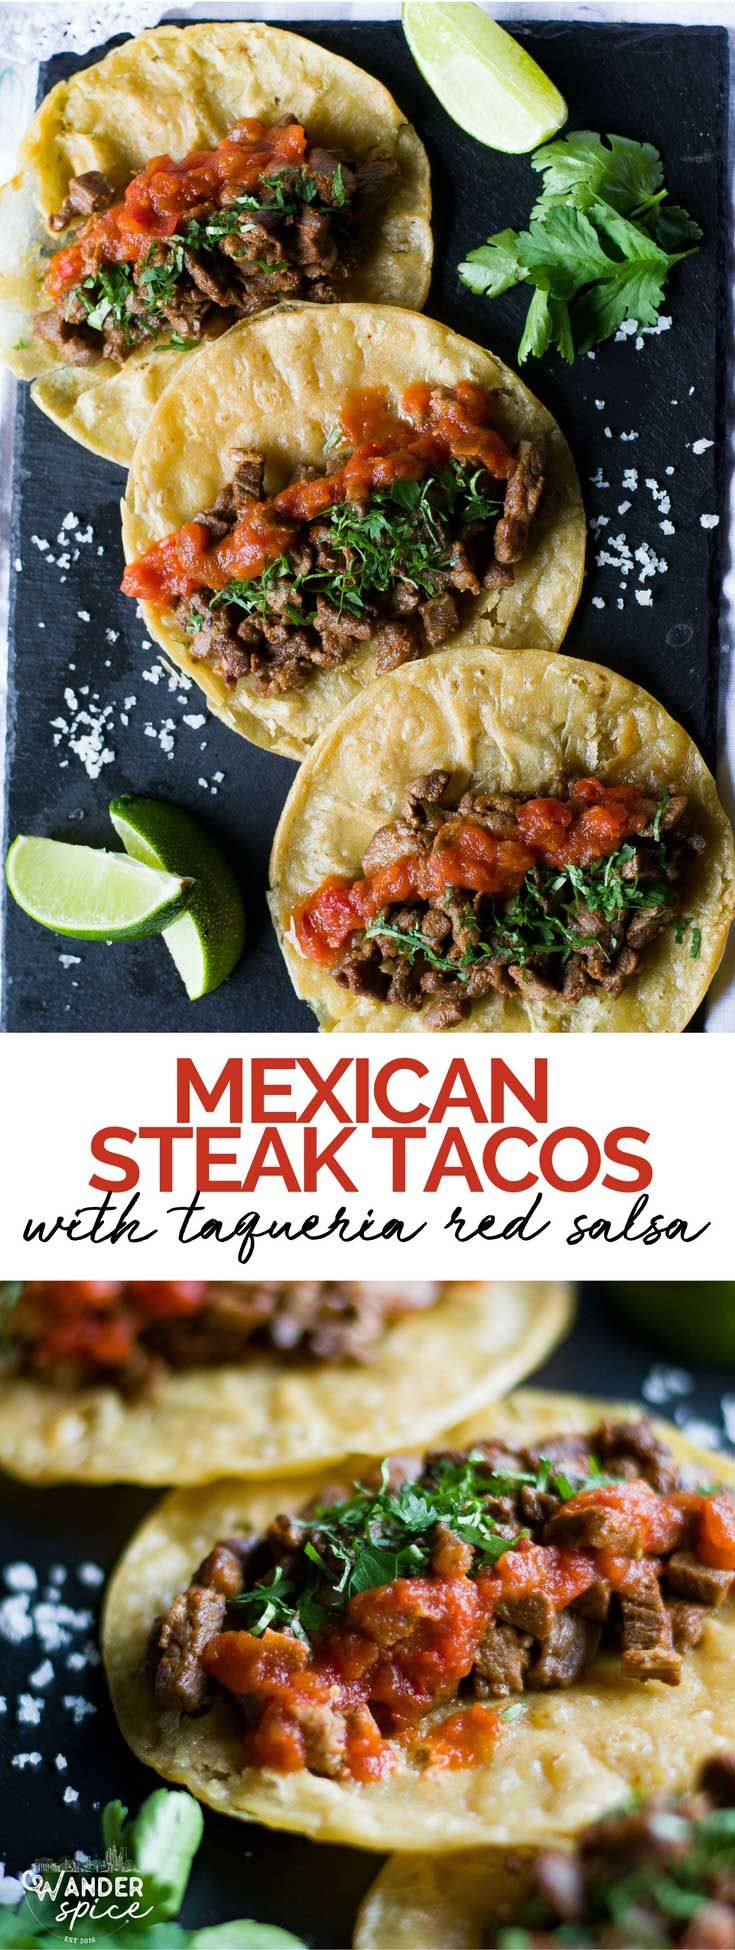 Mexican Steak Tacos - carne asada tacos with taqueria-style red salsa. Tacos | Mexican | Steak | Corn Tortillas | Red Salsa | Cilantro  #mexicanfood #tacos #recipes